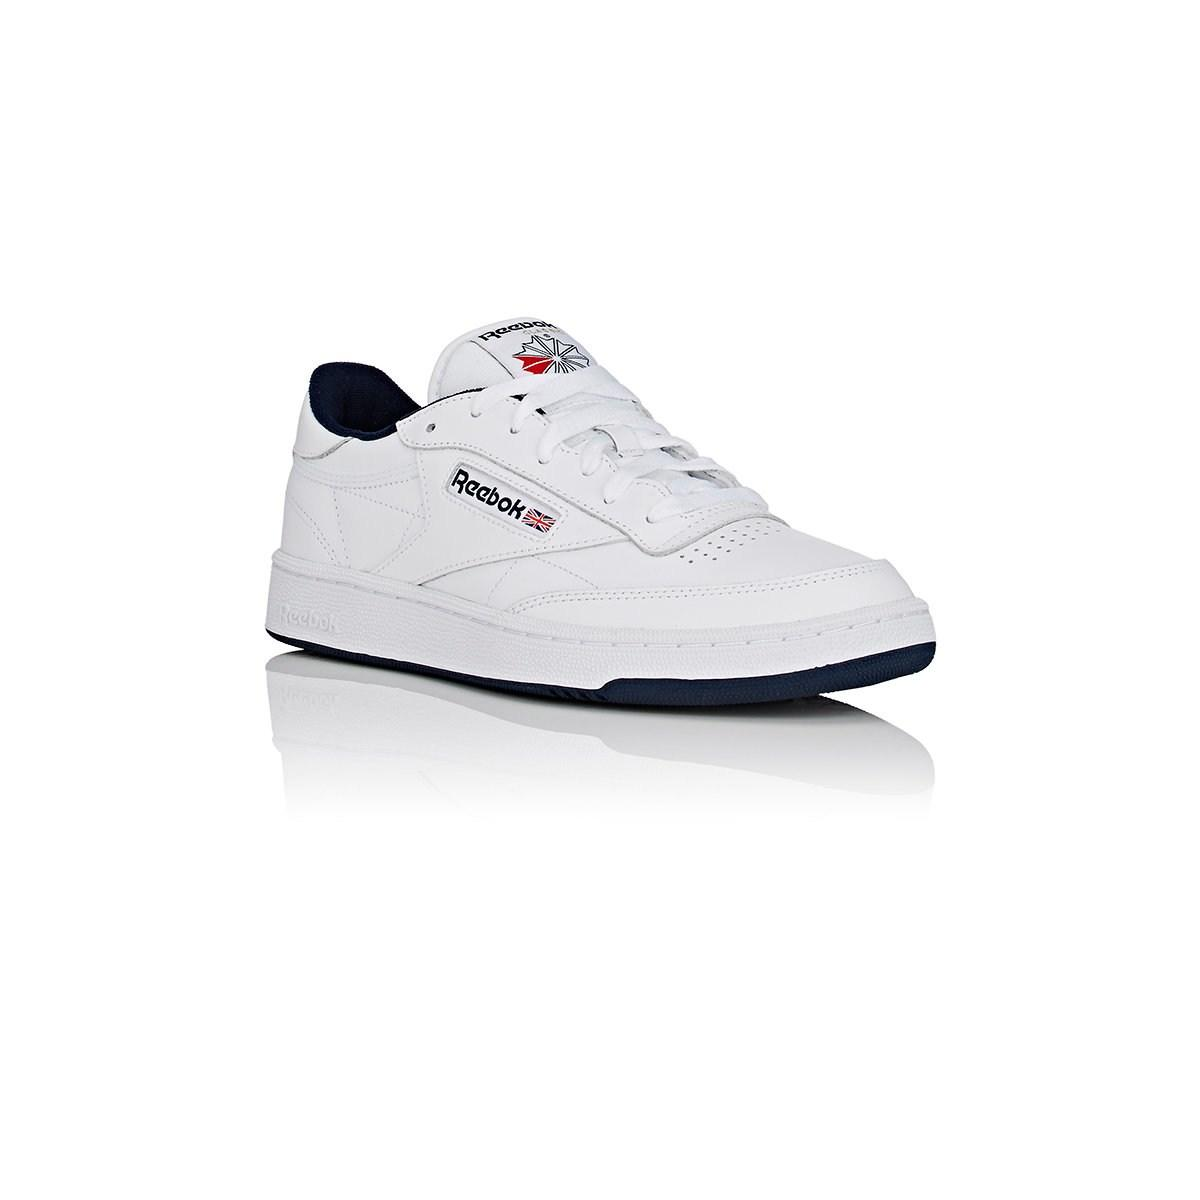 b7dcce5c57a Reebok - White Club C 85 Leather Low-top Sneakers for Men - Lyst. View  fullscreen